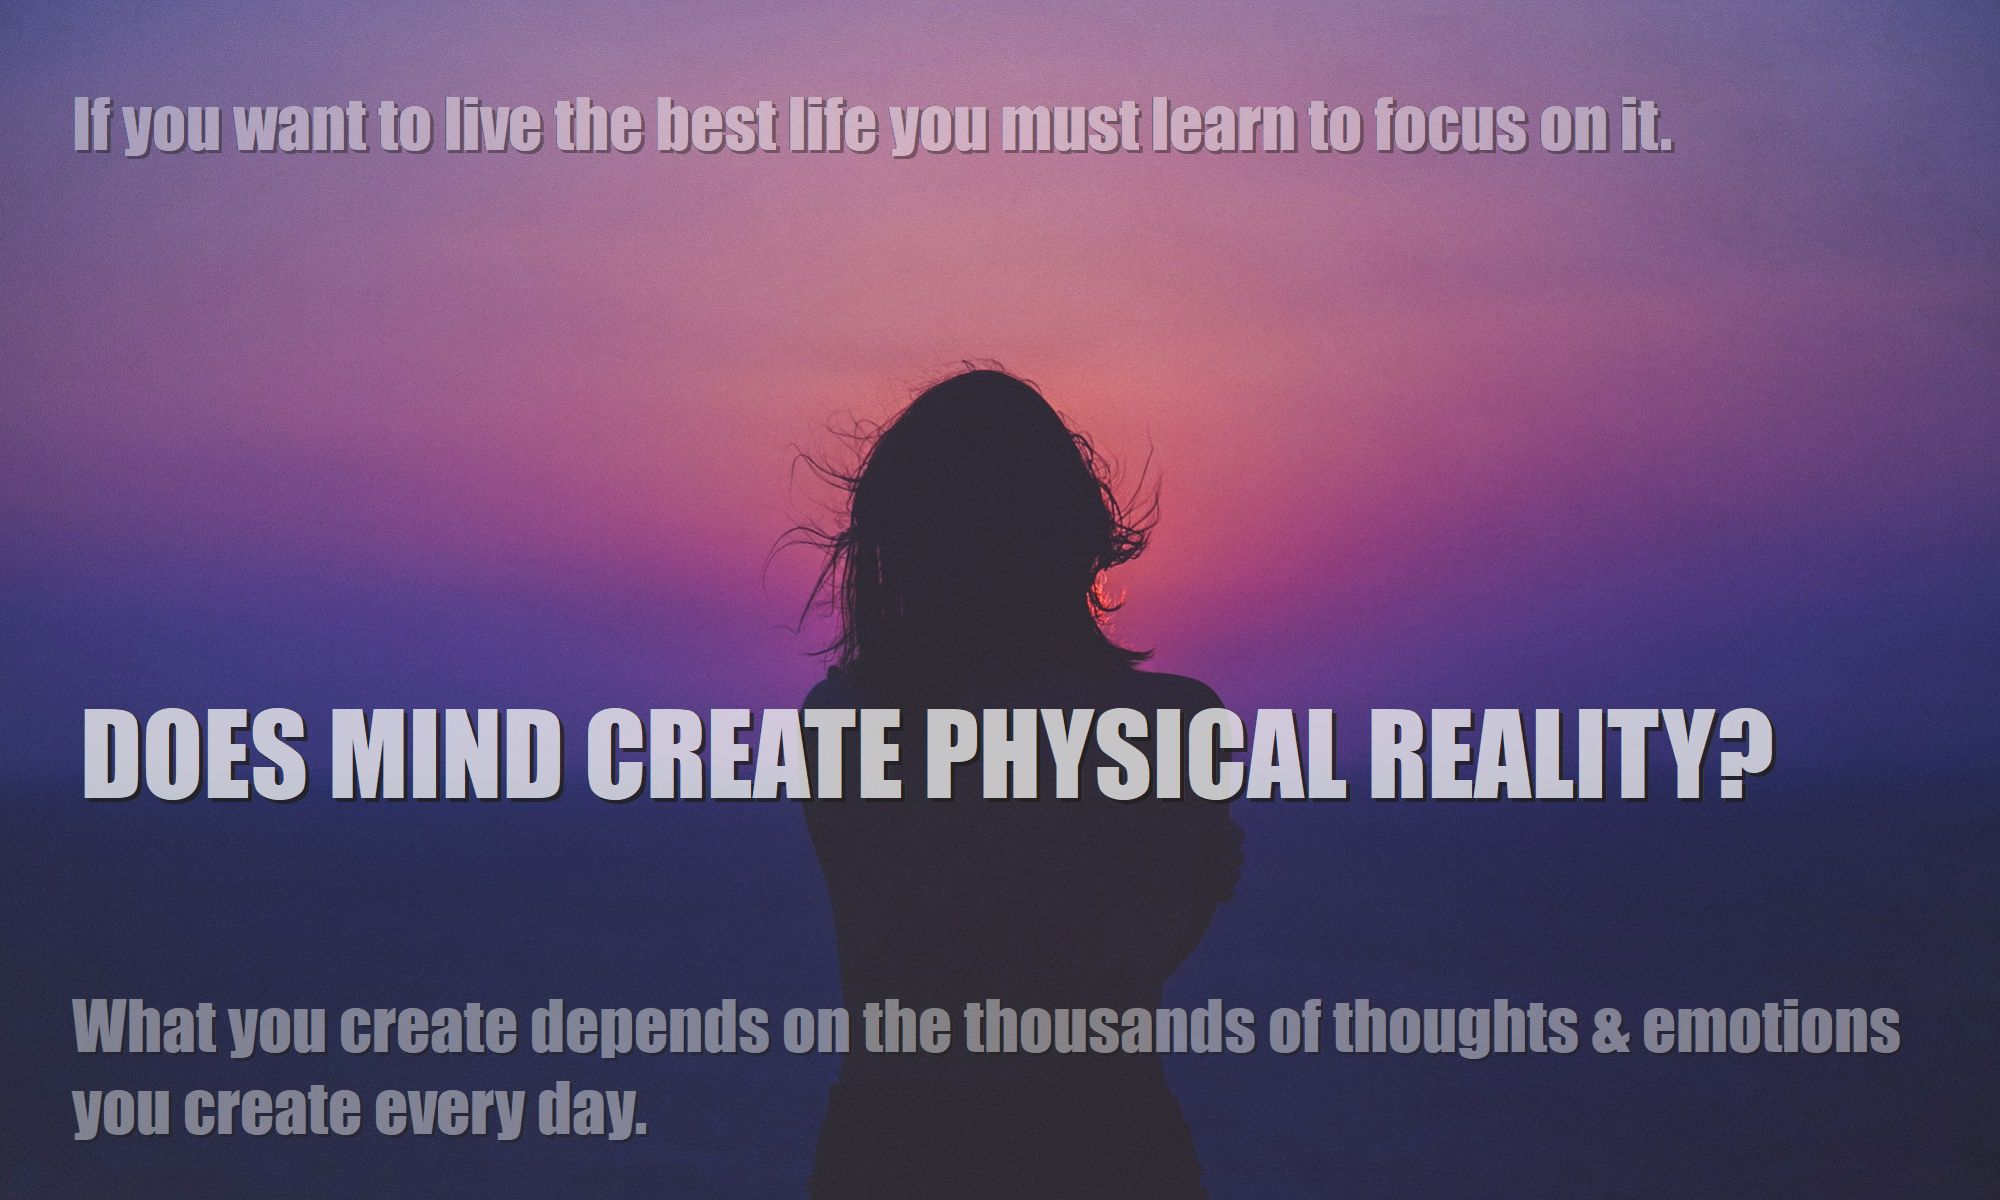 how-does-my-mind-create-physical-reality-can-i-use-my-mental-power-to-create-2000